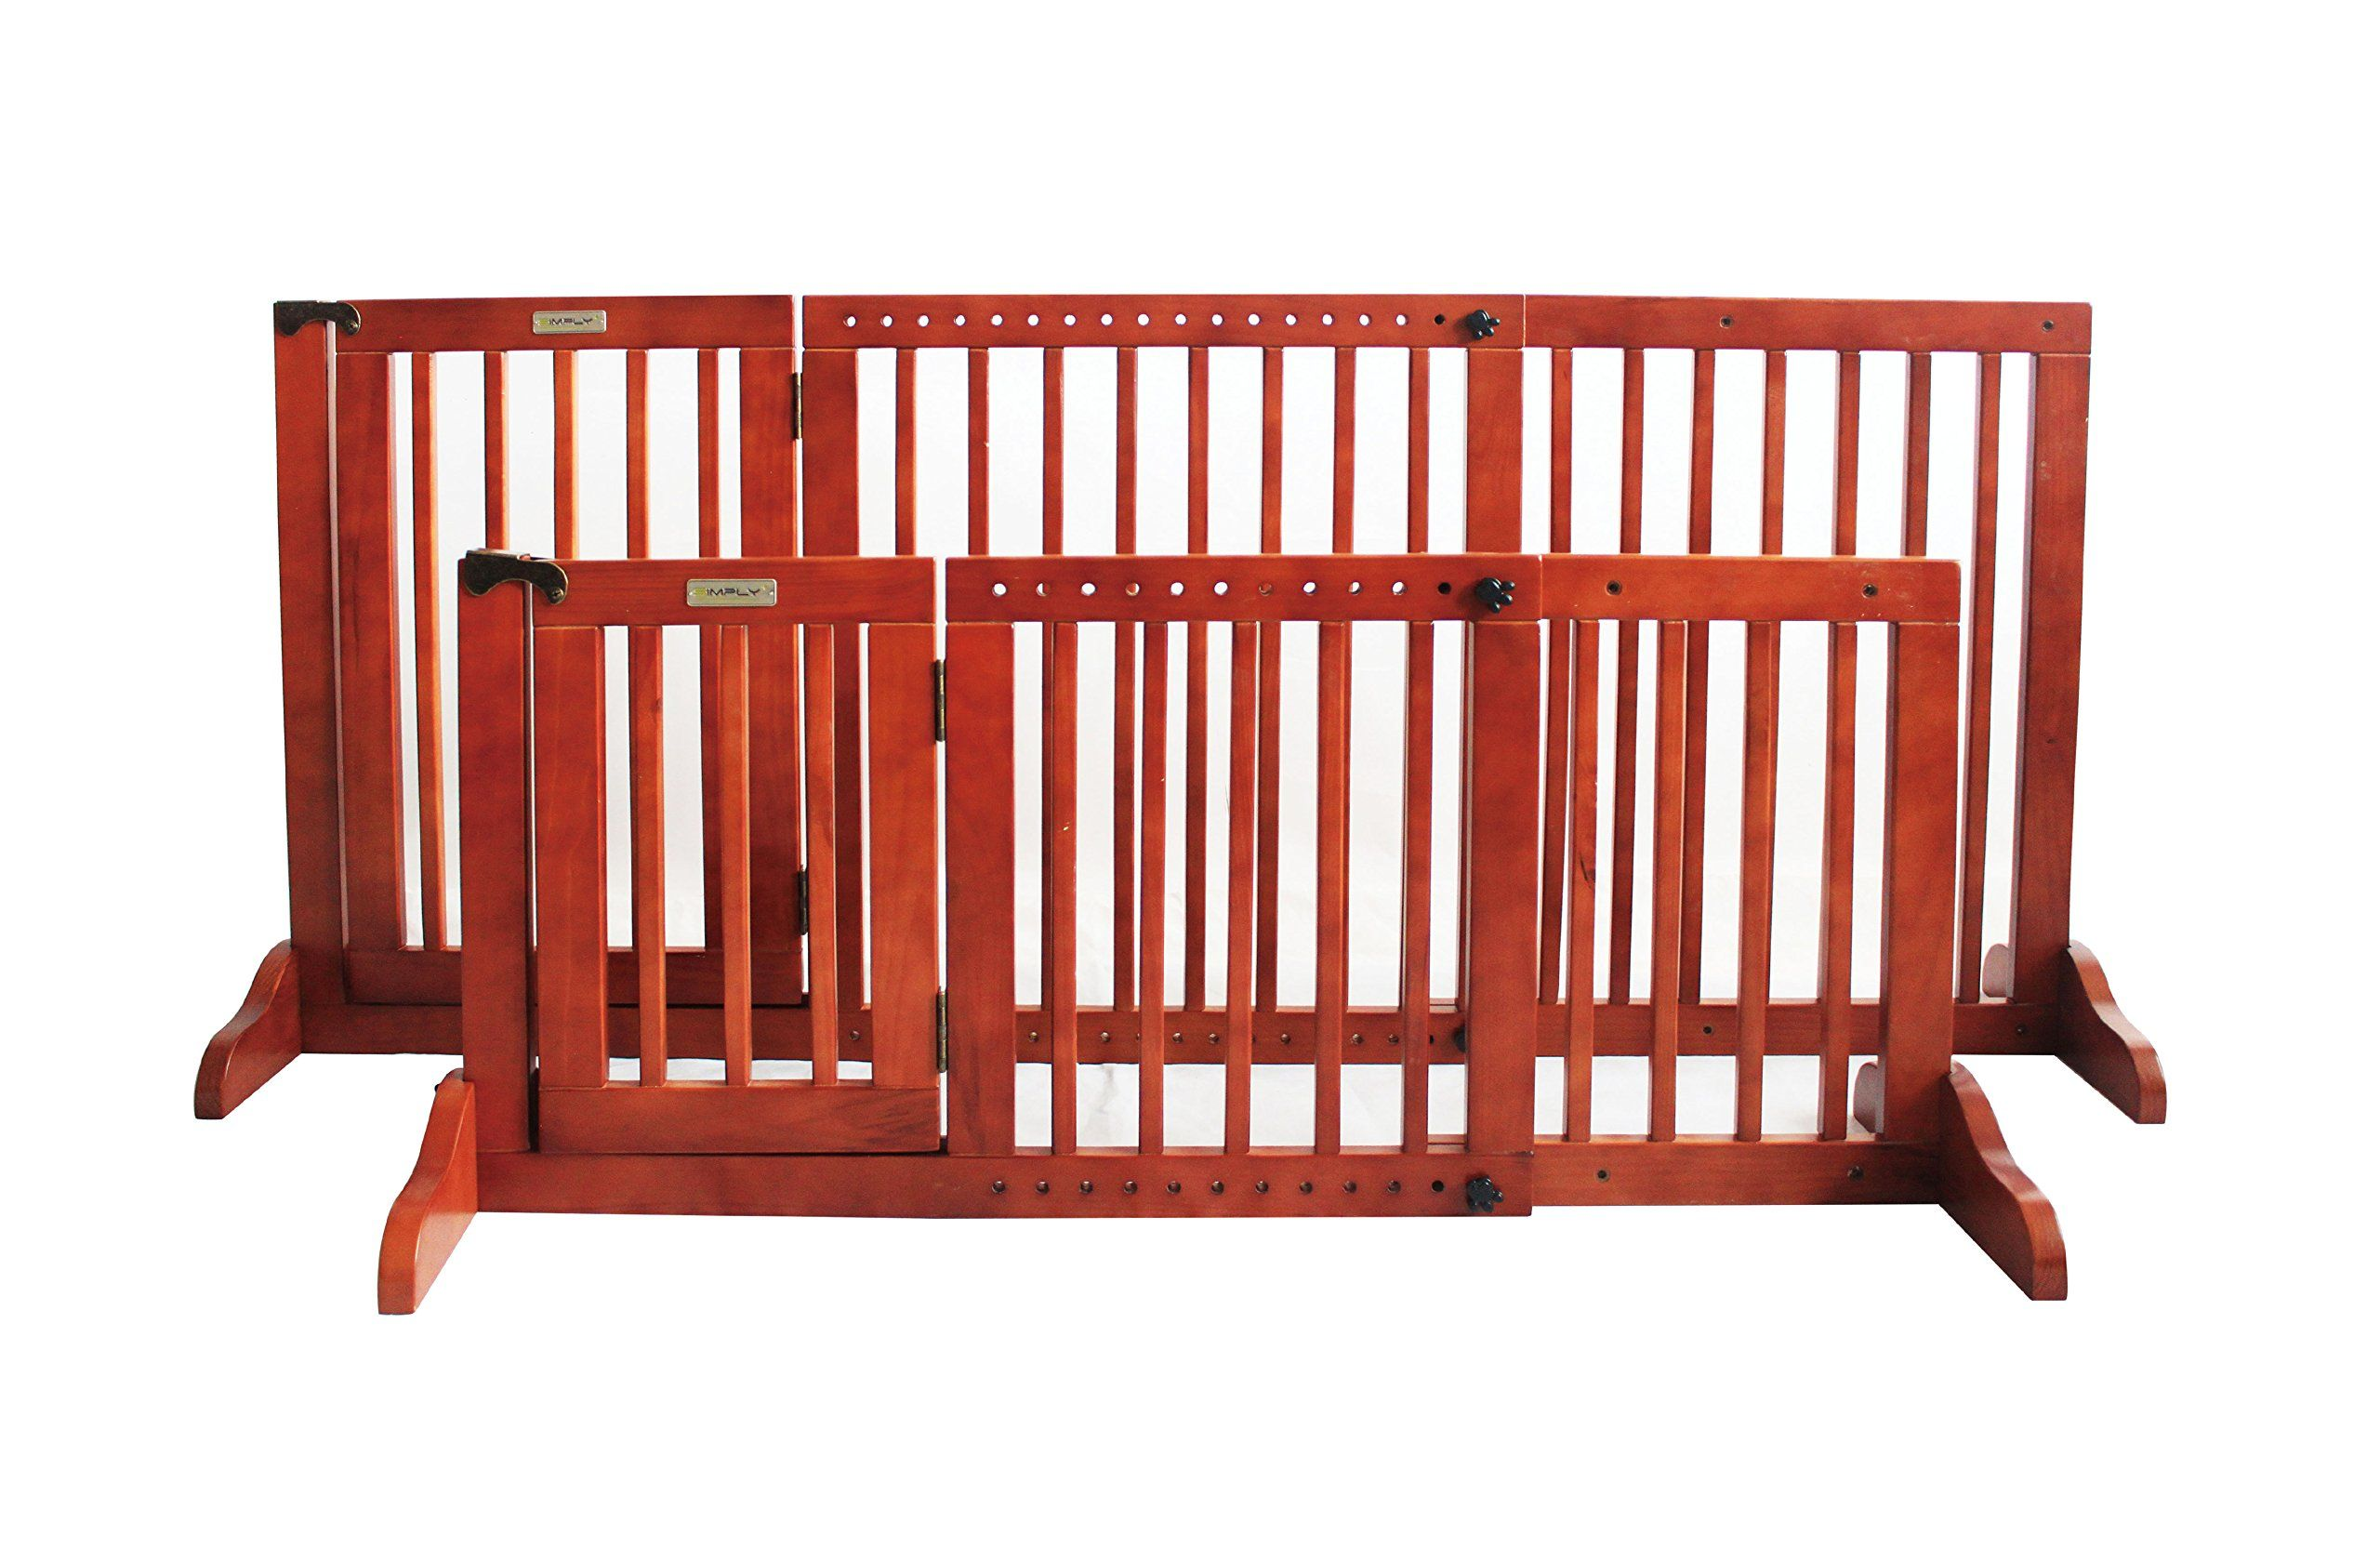 Simply Plus Deluxe Wooden Pet Gate Freestanding Pet Dog Gate For Indoor Home And Office Use Keeps Pets Safe Easy Set Up No Dog Gate Pet Gate Wooden Pet Gate